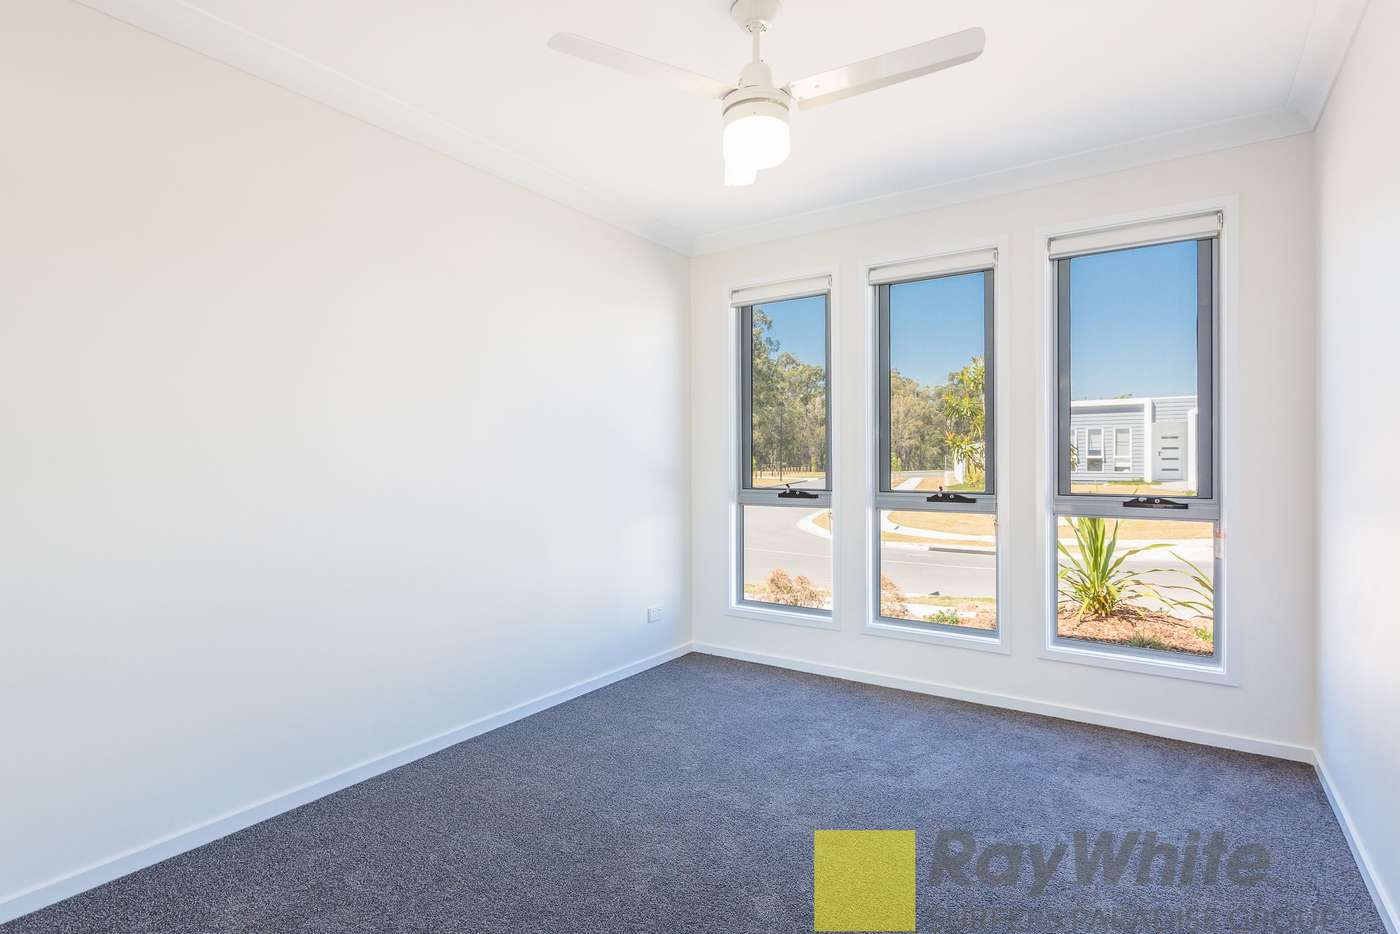 Seventh view of Homely house listing, 1 Price Court, Pimpama QLD 4209